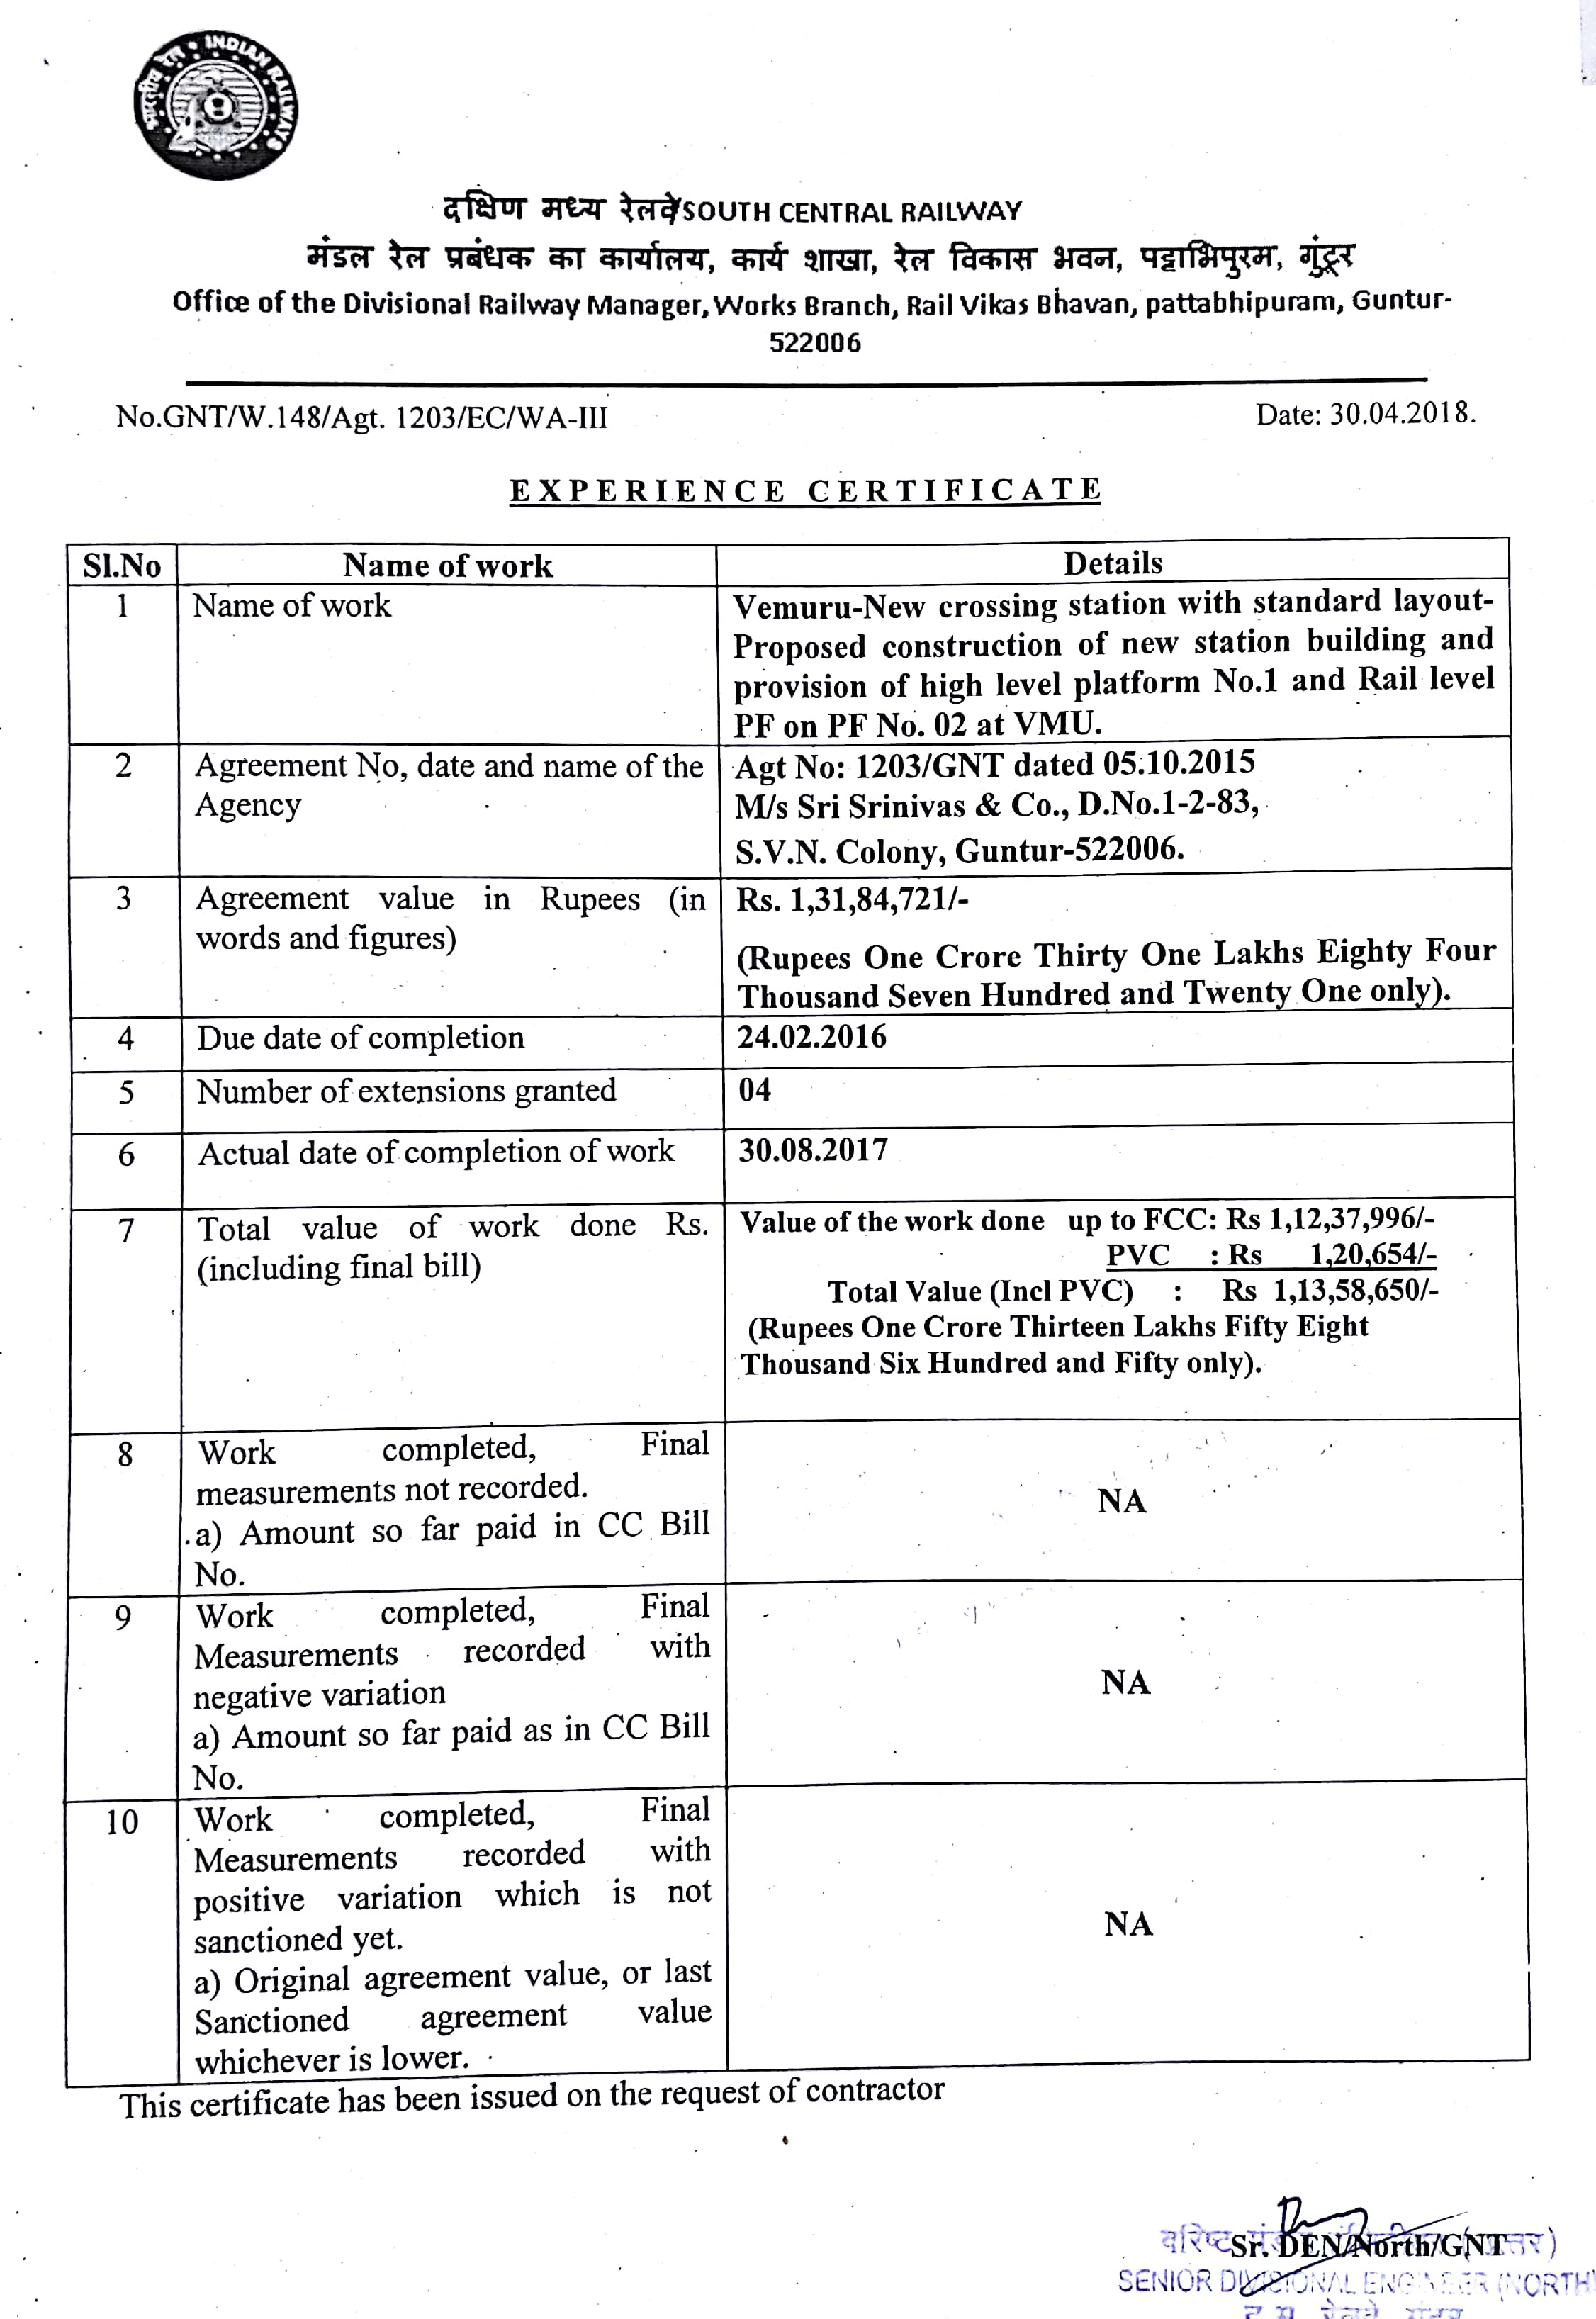 SCR::Details of Experience Certificate issued